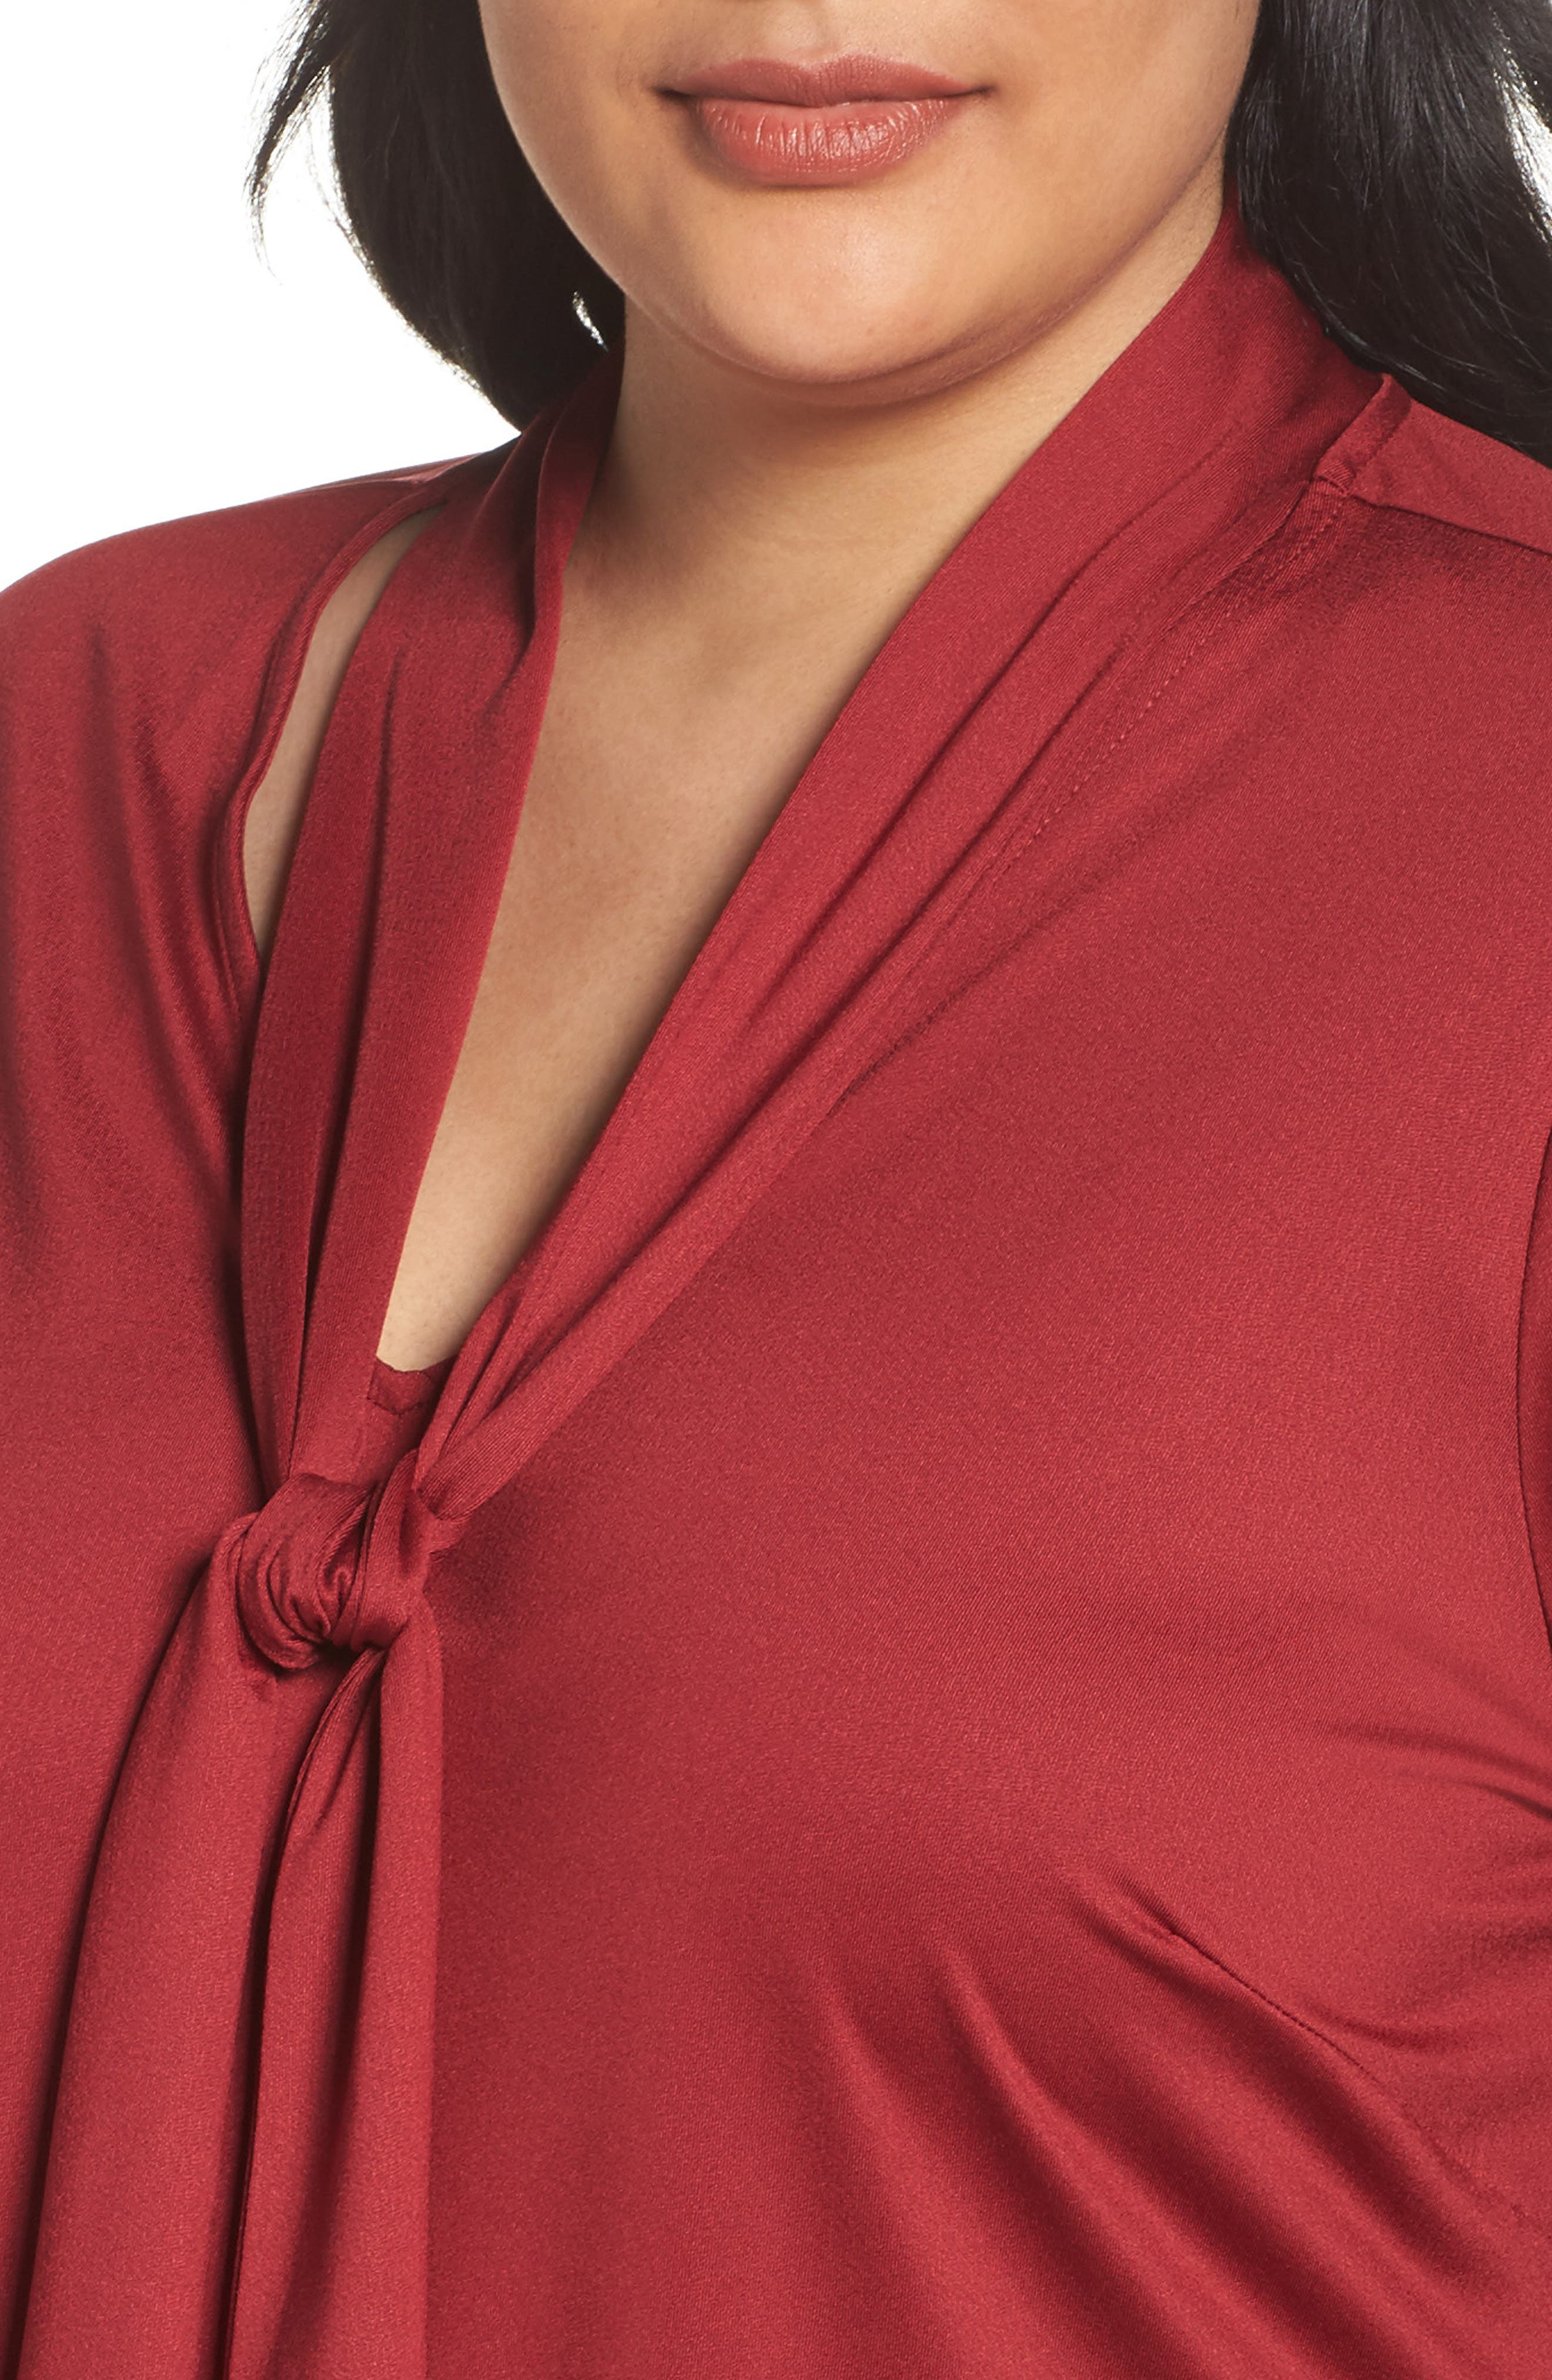 Tie Neck Top,                             Alternate thumbnail 4, color,                             Rhubarb